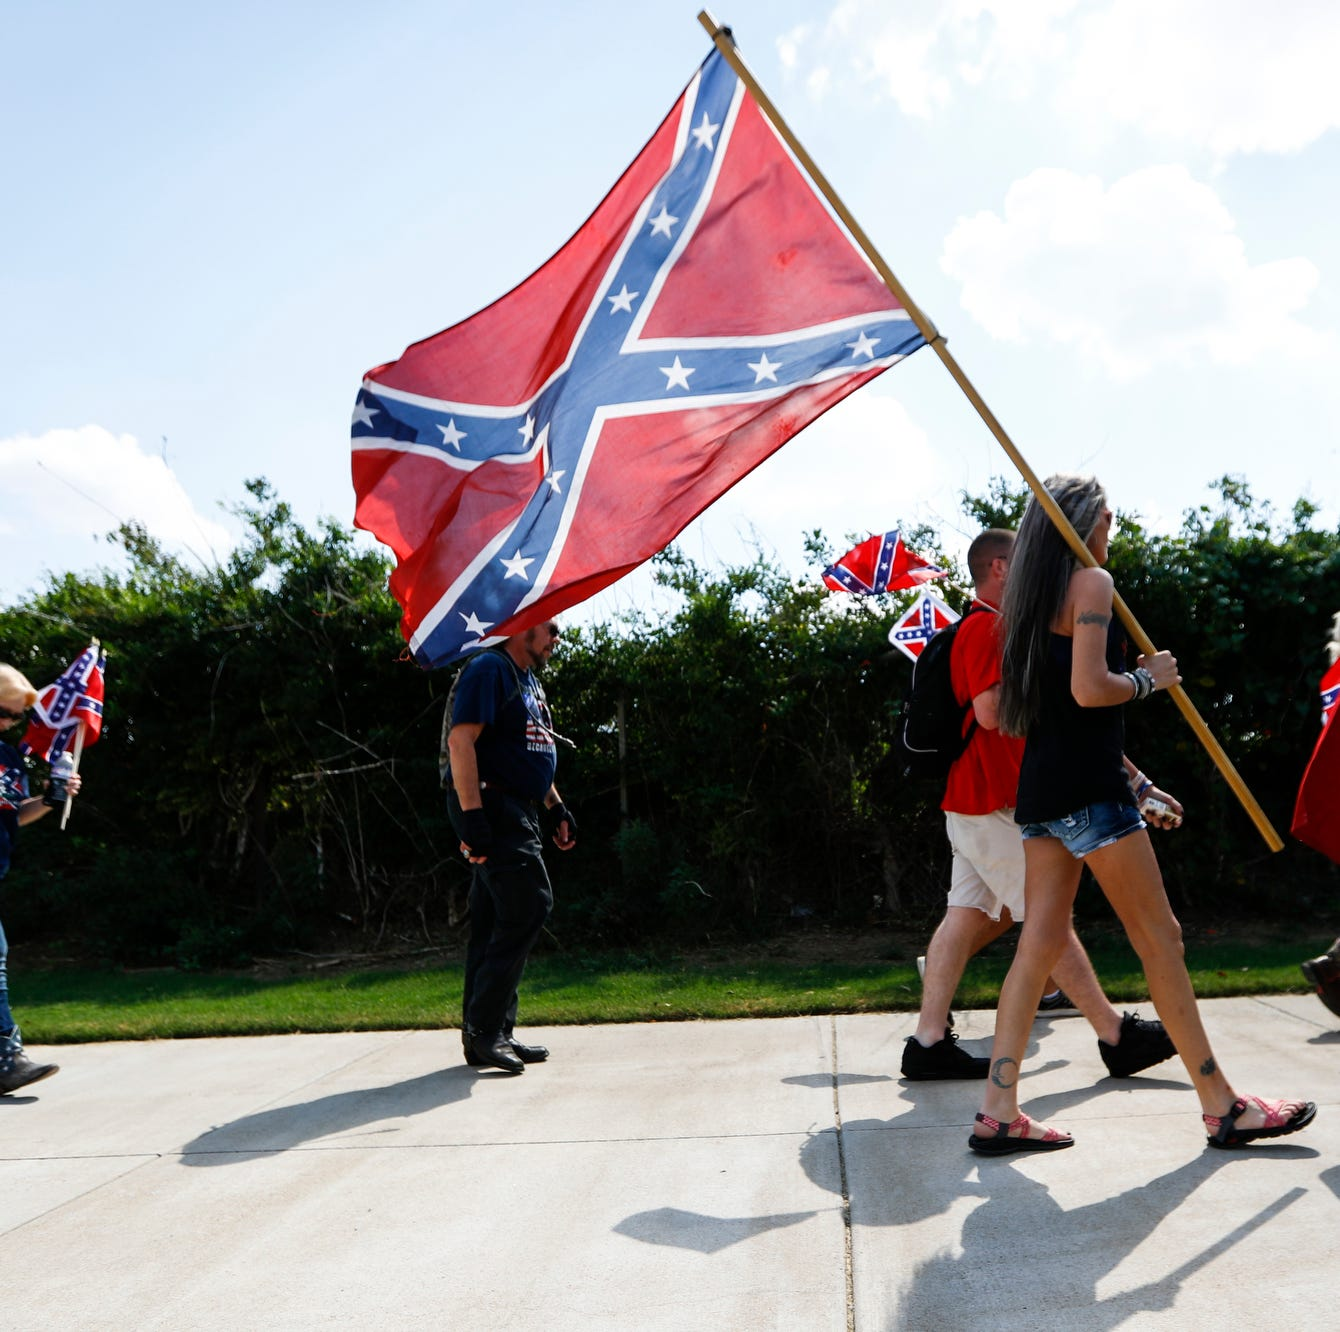 They love the Rebel flag and are protesting at Ole Miss. Who is Confederate 901?